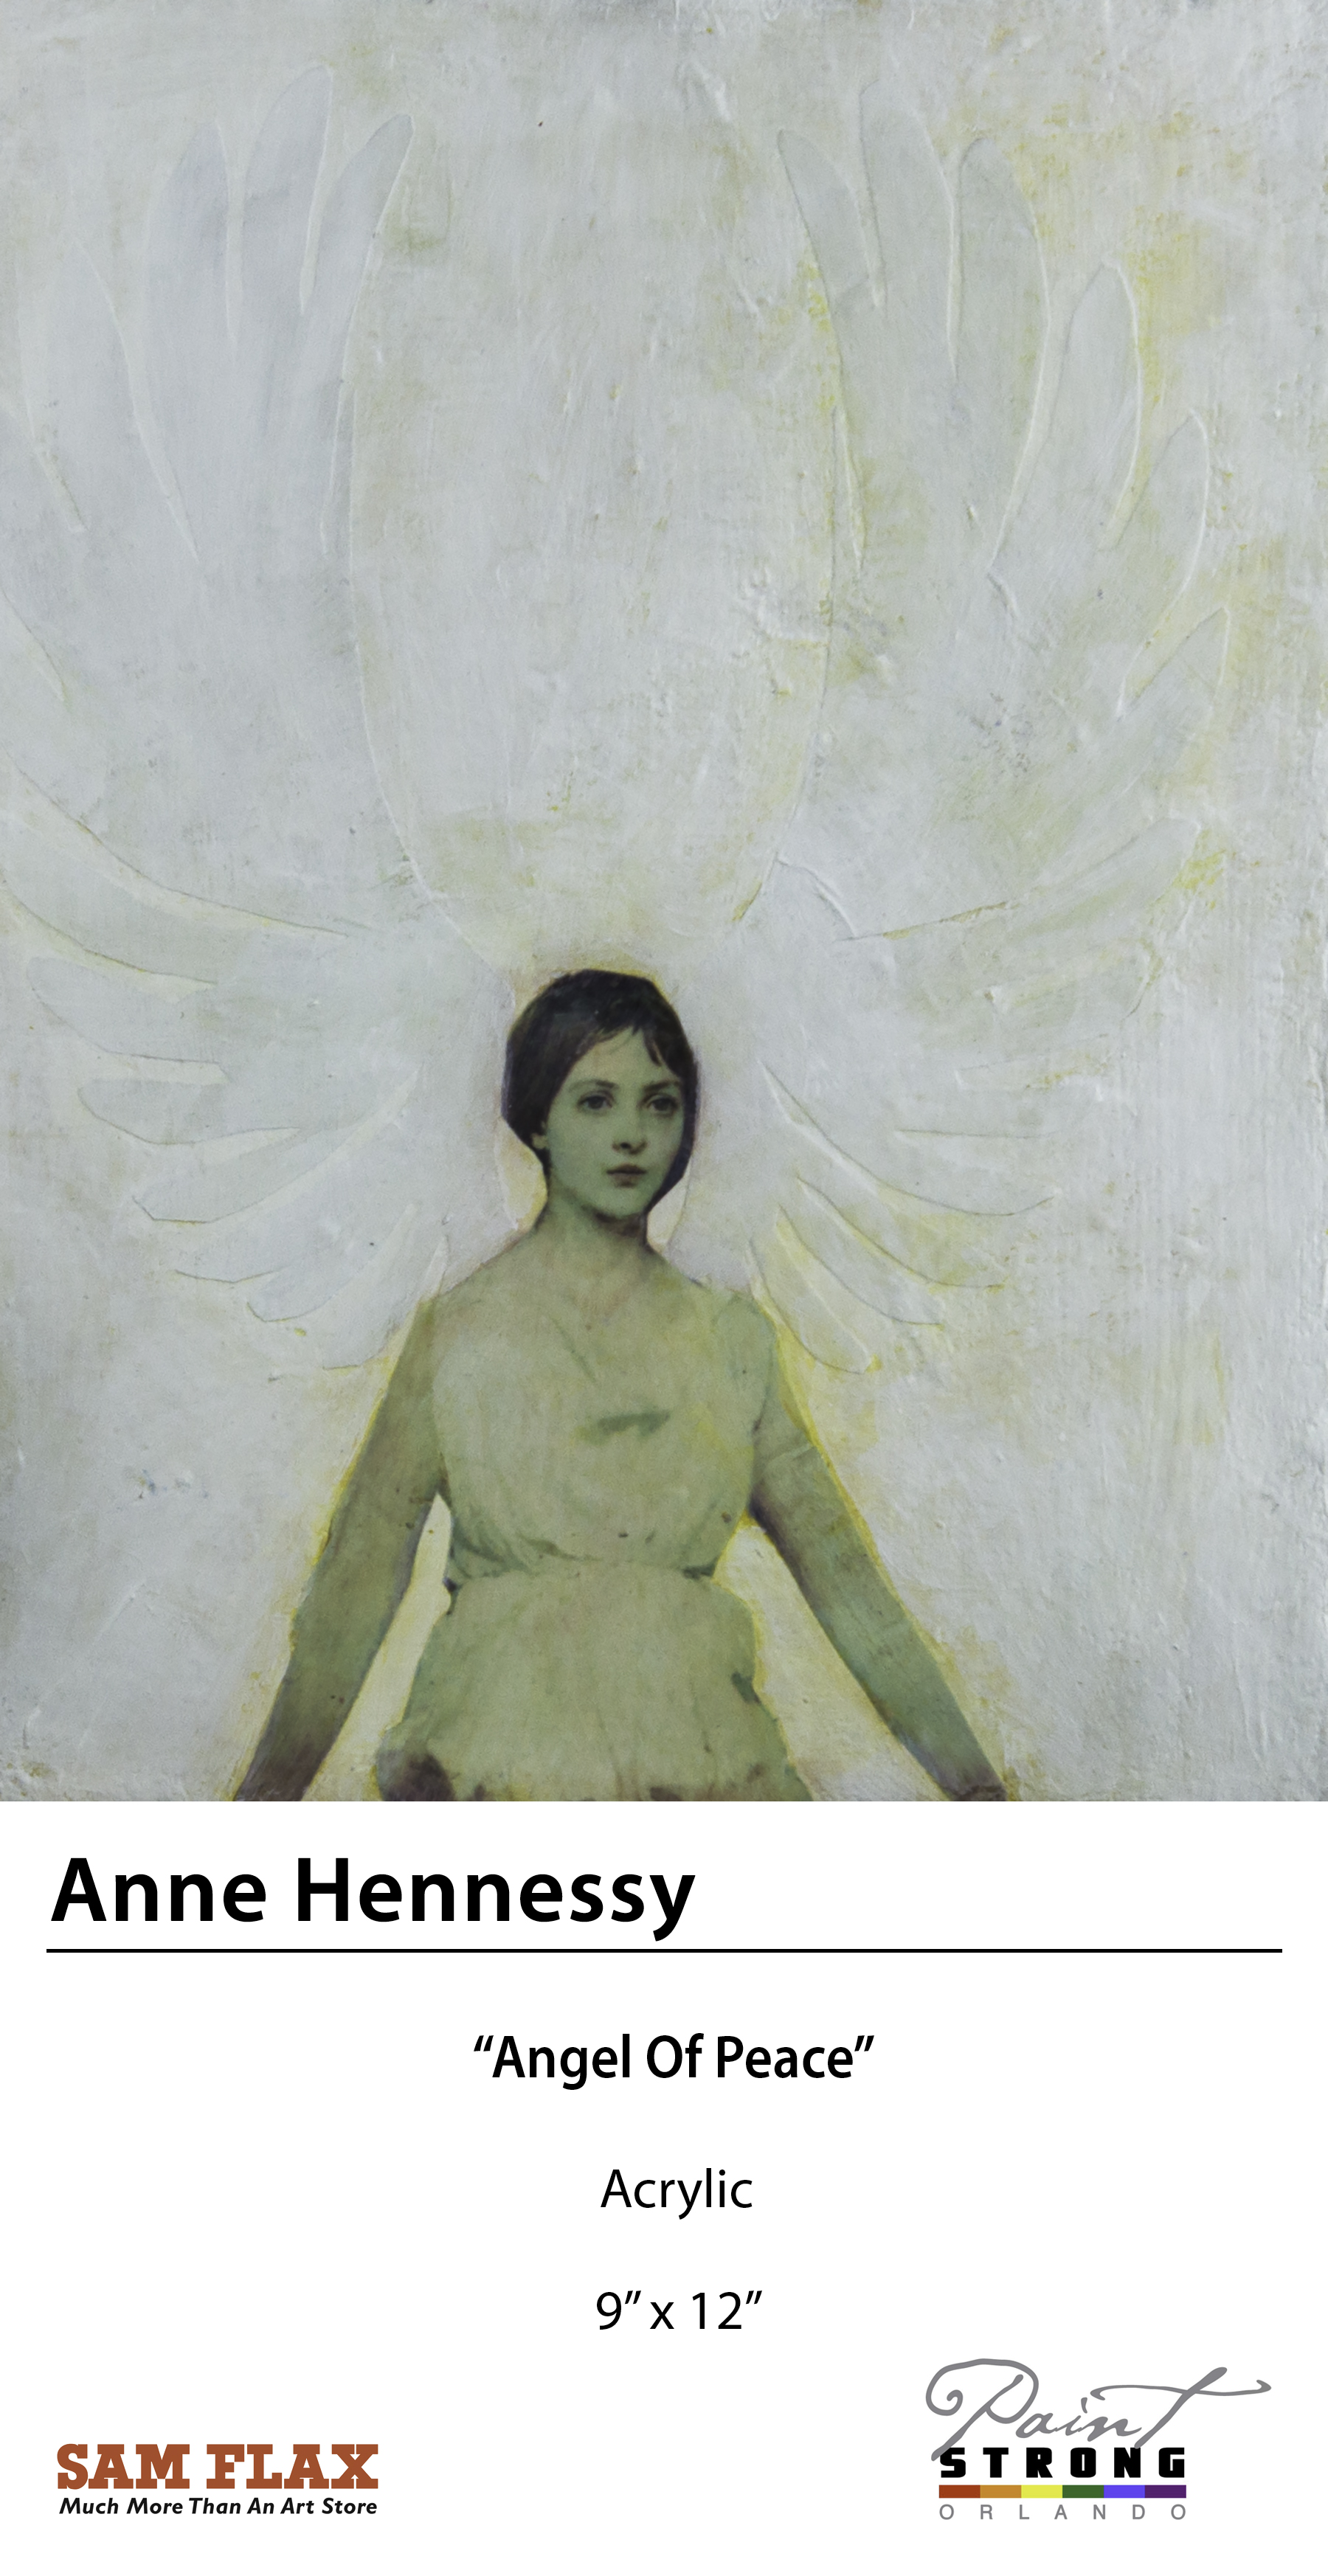 Anne Hennessy